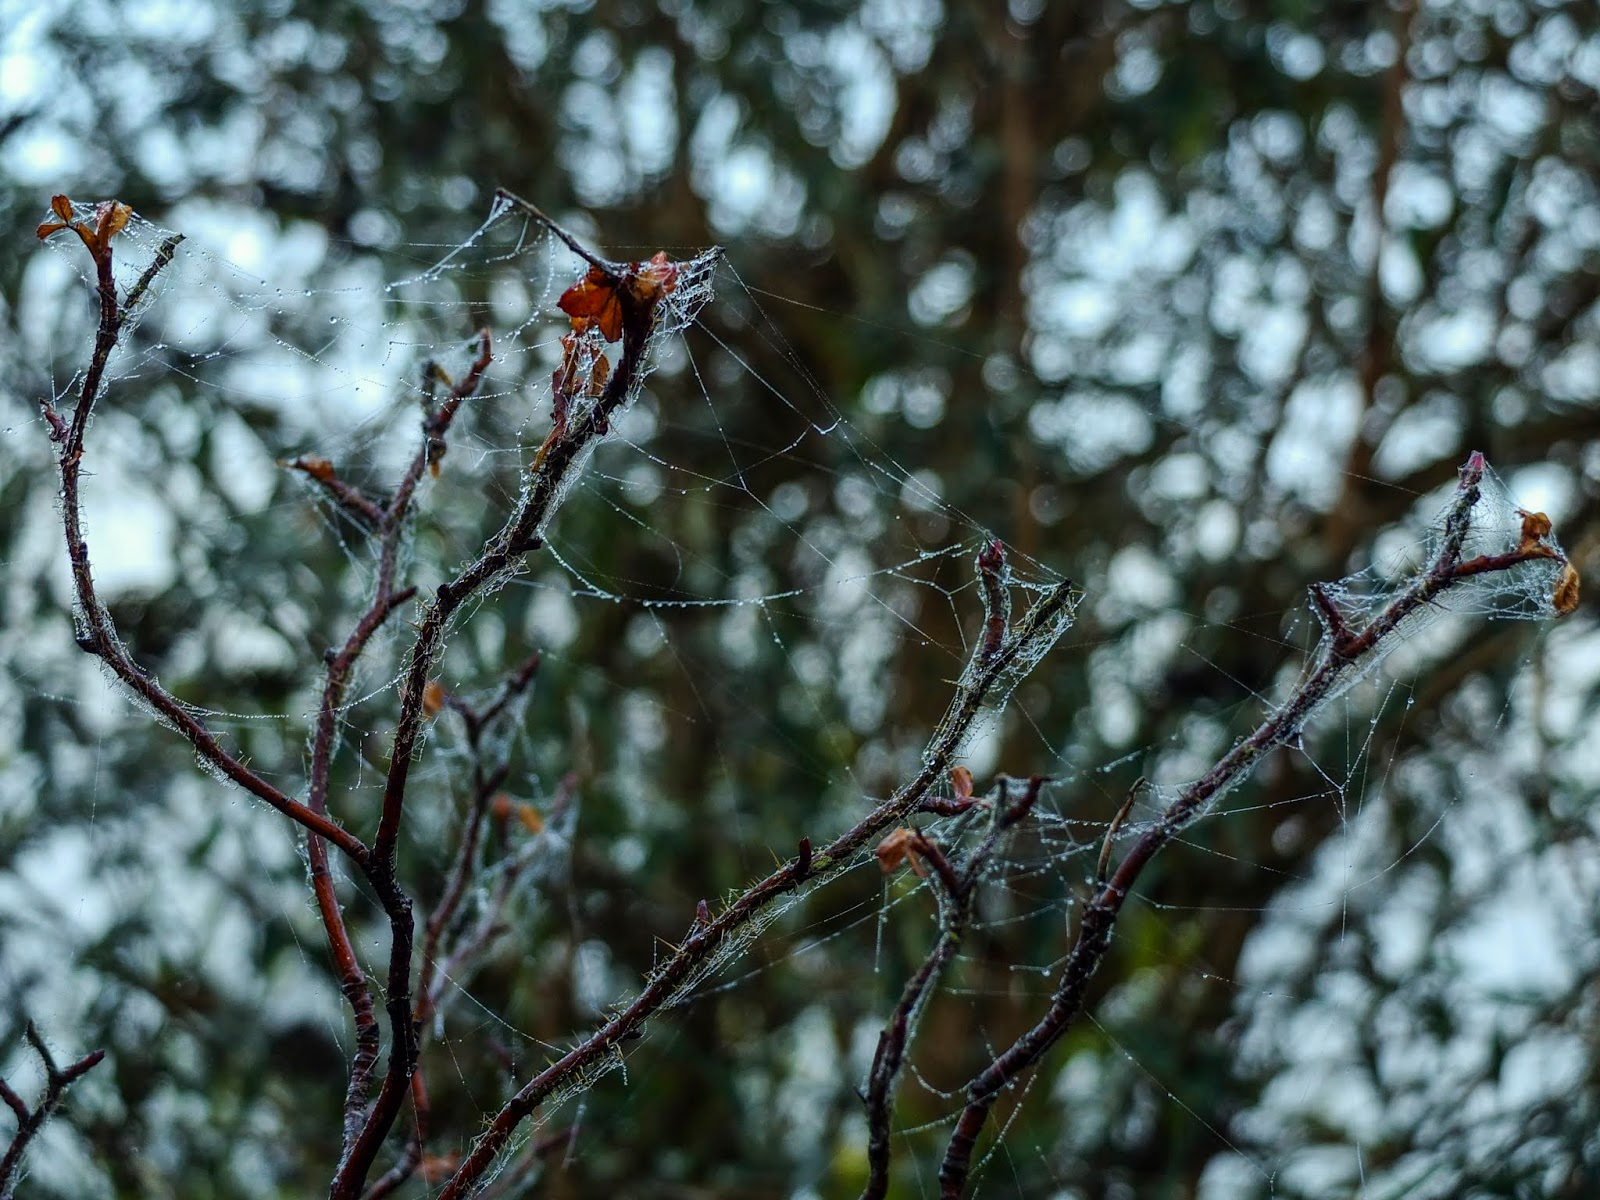 Rose branches covered in spider web with a bokeh background.